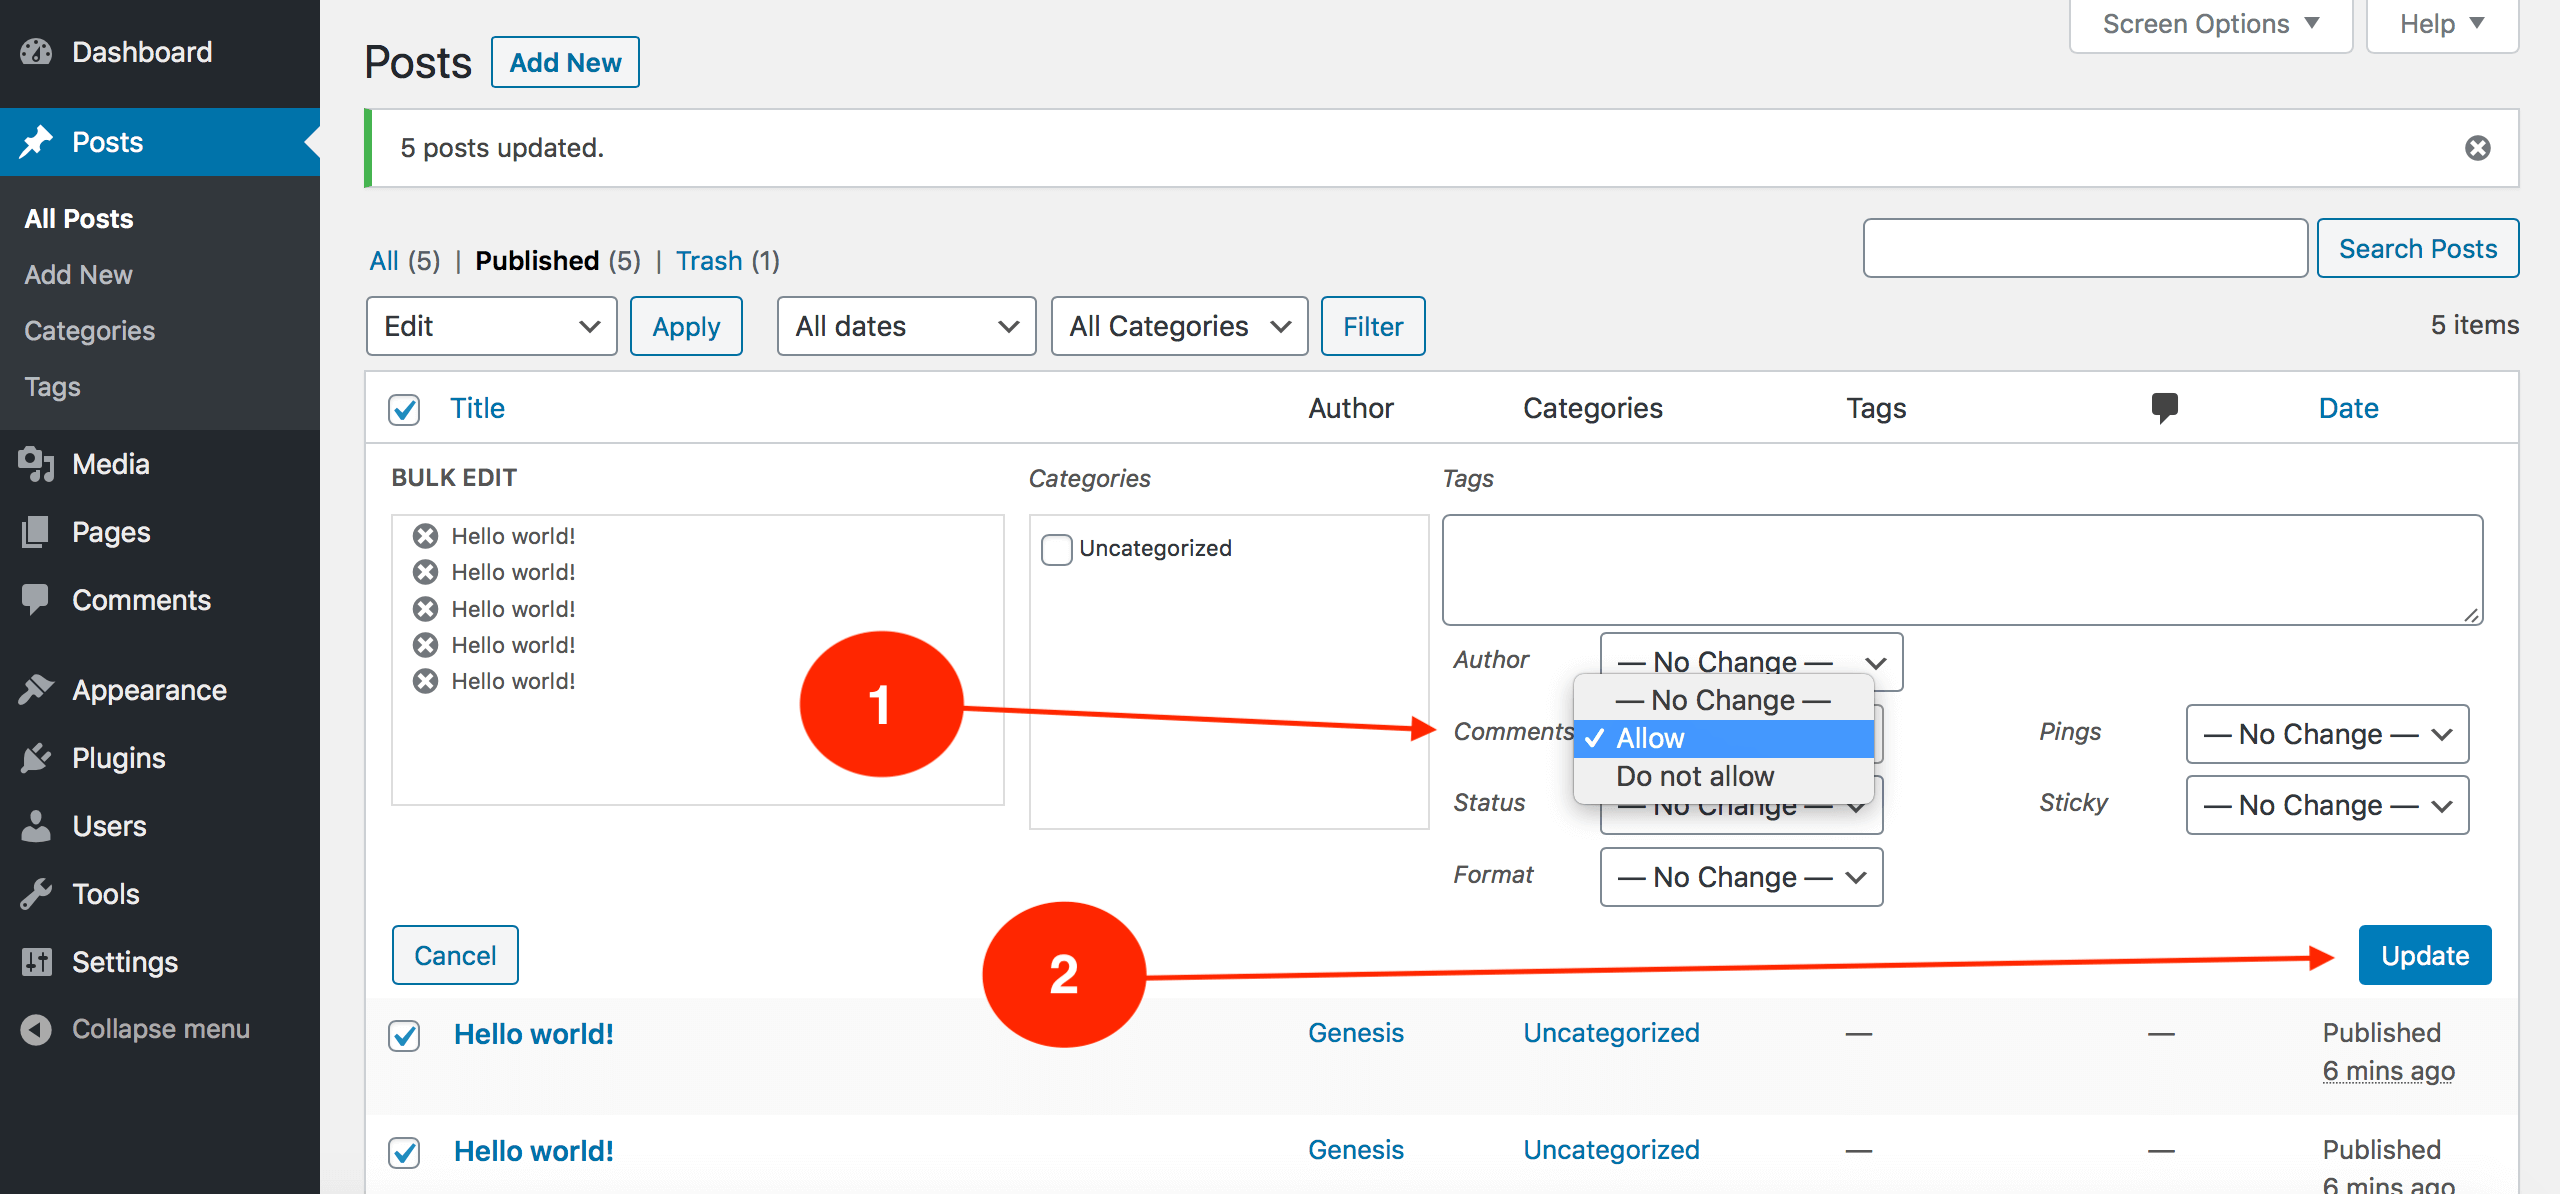 How to allow blog comments in BULK